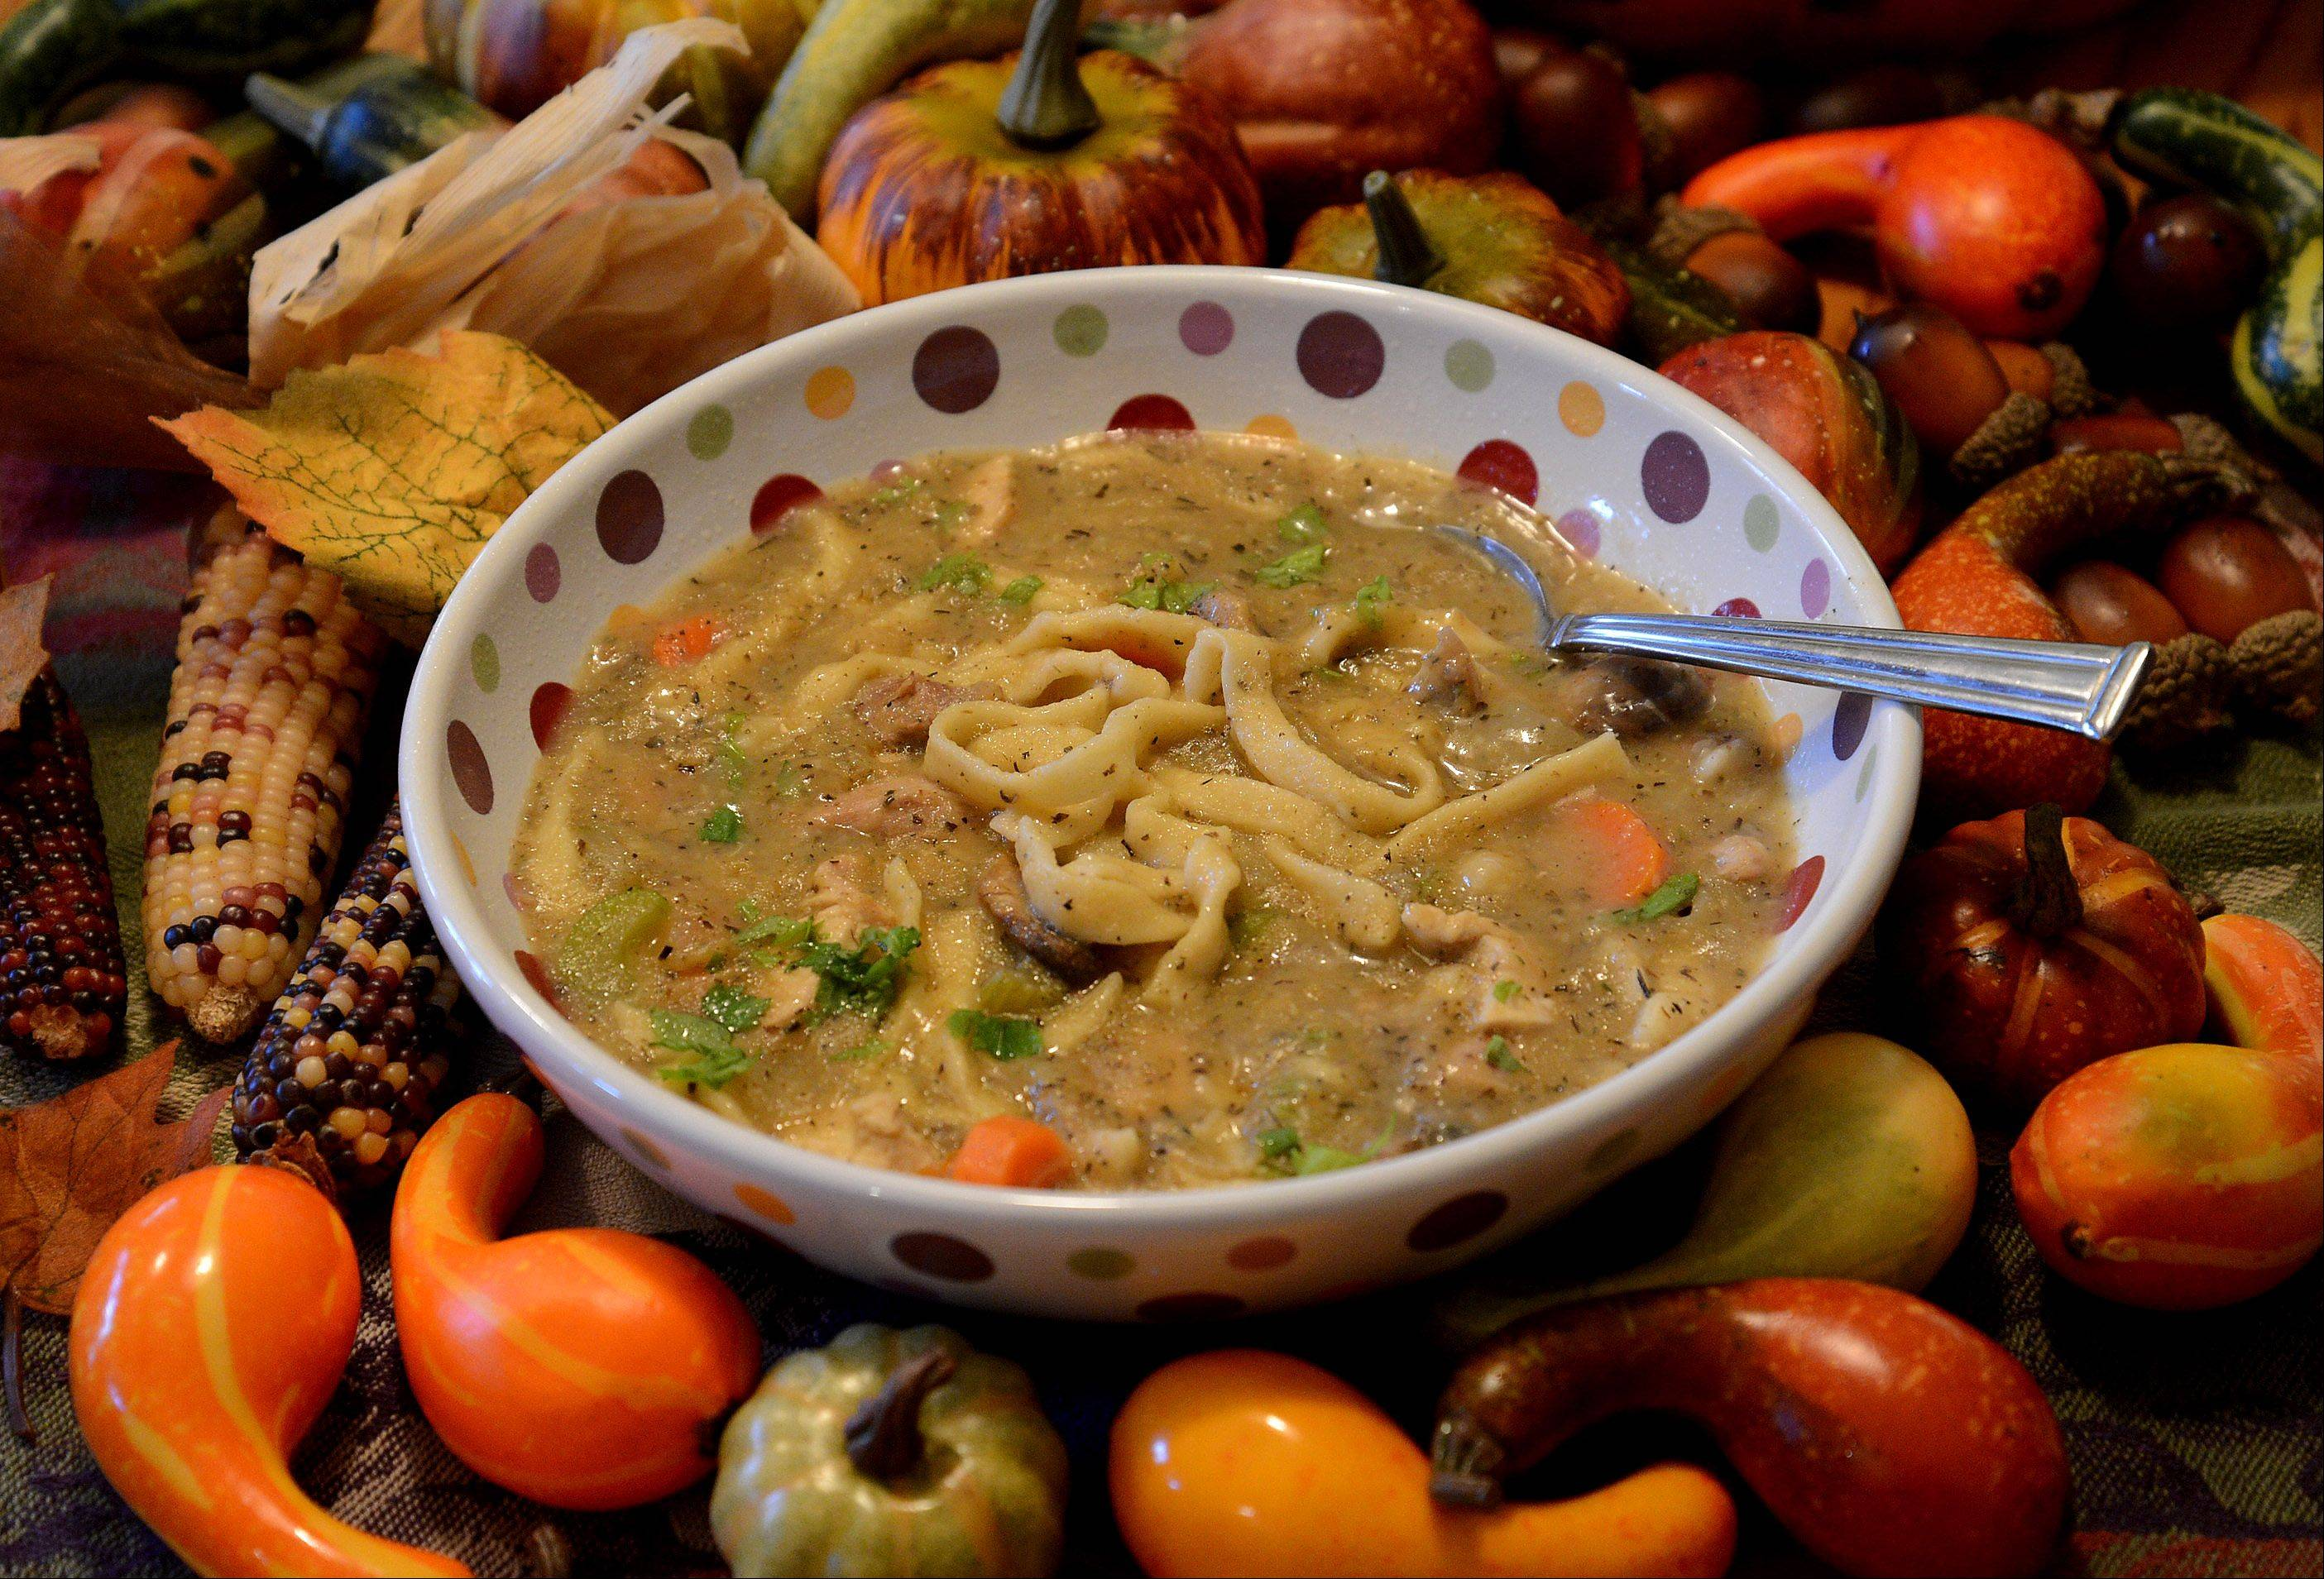 Forget turkey sandwiches. Turn Thanksgiving leftovers into a hot, filling soup.